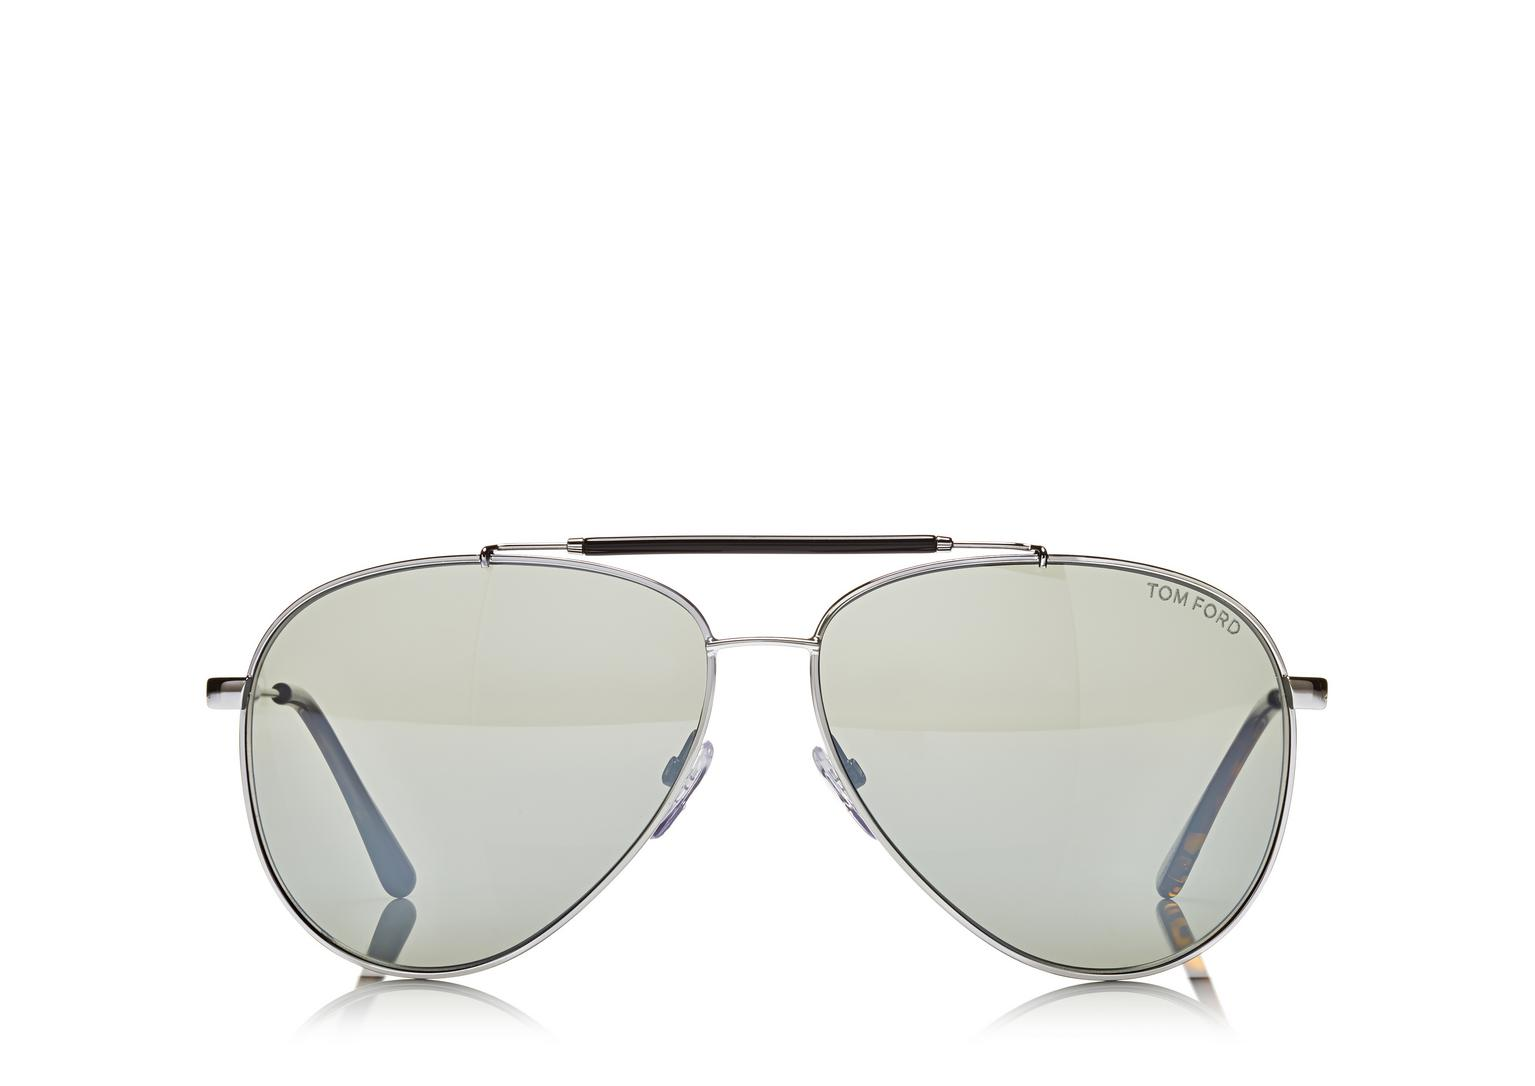 Tom Ford Ruthenium Rick Aviator Sunglasses